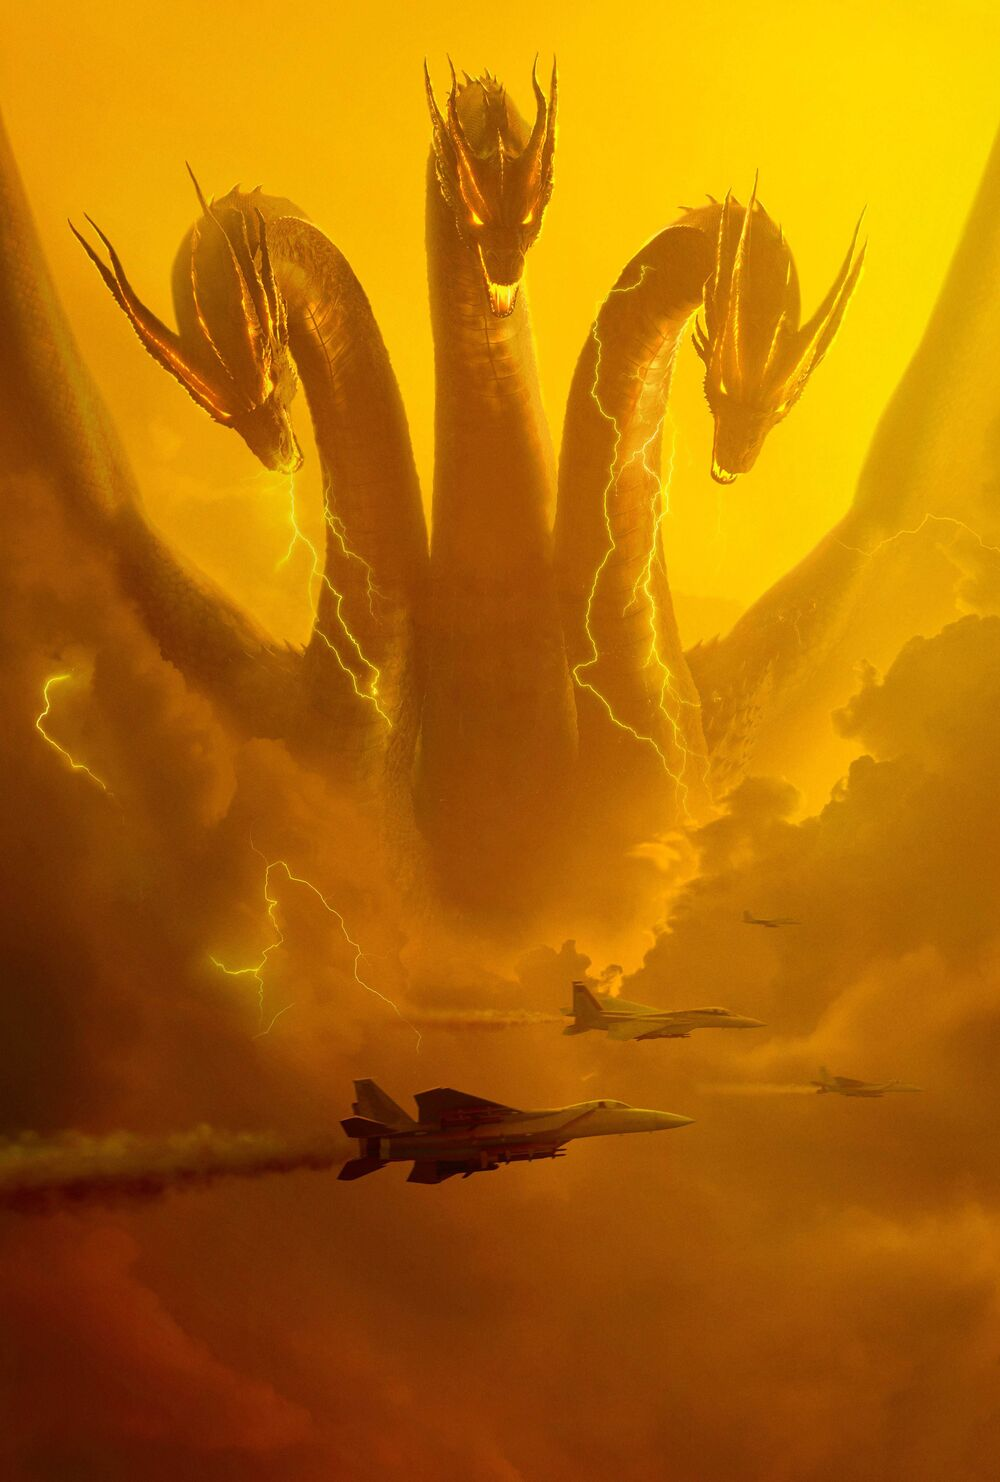 King Ghidorah Monsterverse Villains Wiki Fandom ゴジラ (84ゴジ) godzilla (84goji) 【source】 the return of godzilla (1984). king ghidorah monsterverse villains